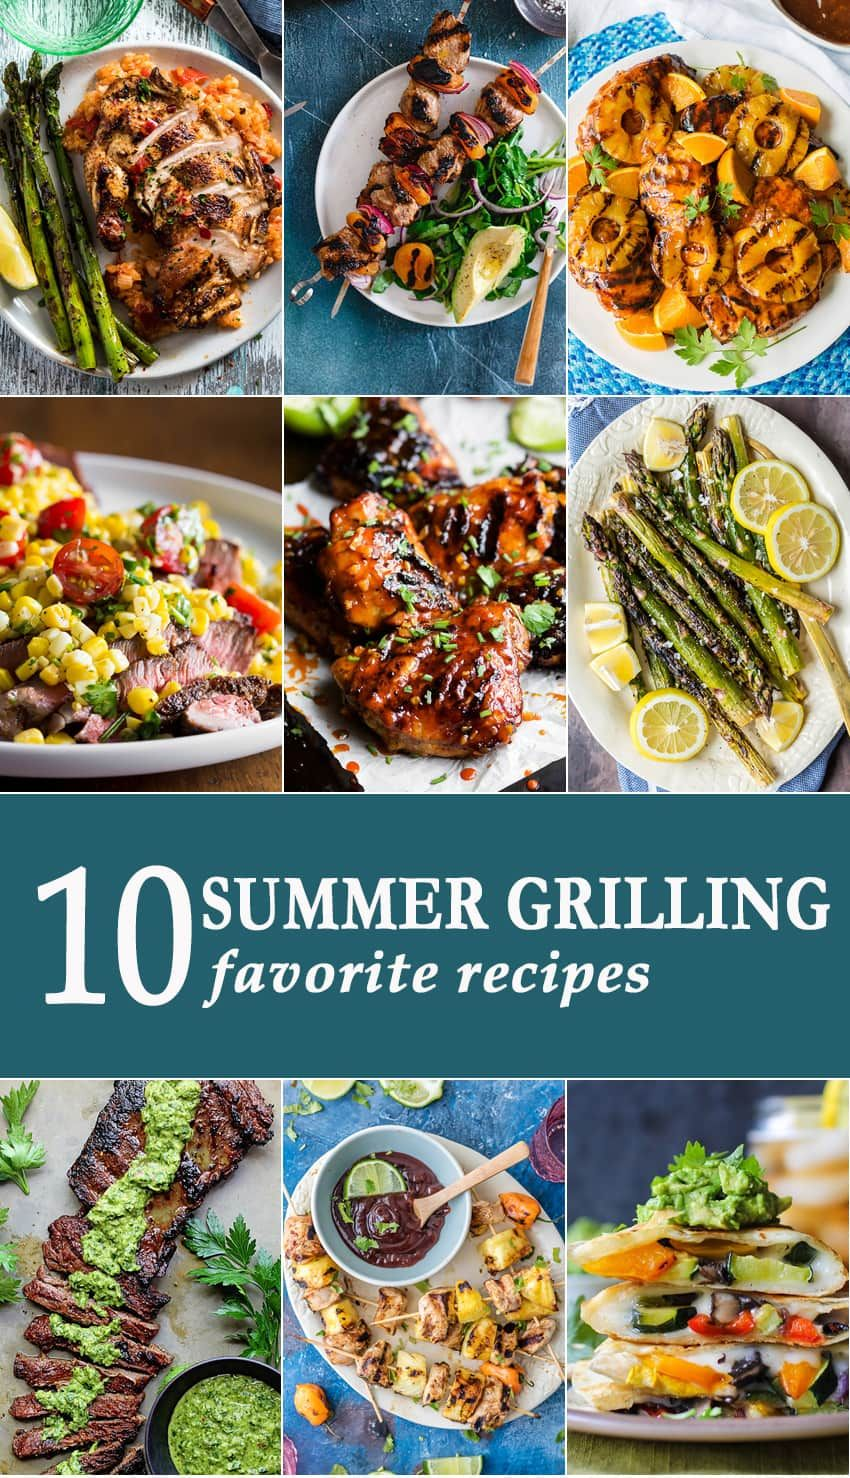 10 Summer Grilling Recipes To Make Your May August Ultra Delicious Easy Recipes For The Grill Perfect Fo Summer Grilling Recipes Bbq Recipes Barbeque Recipes